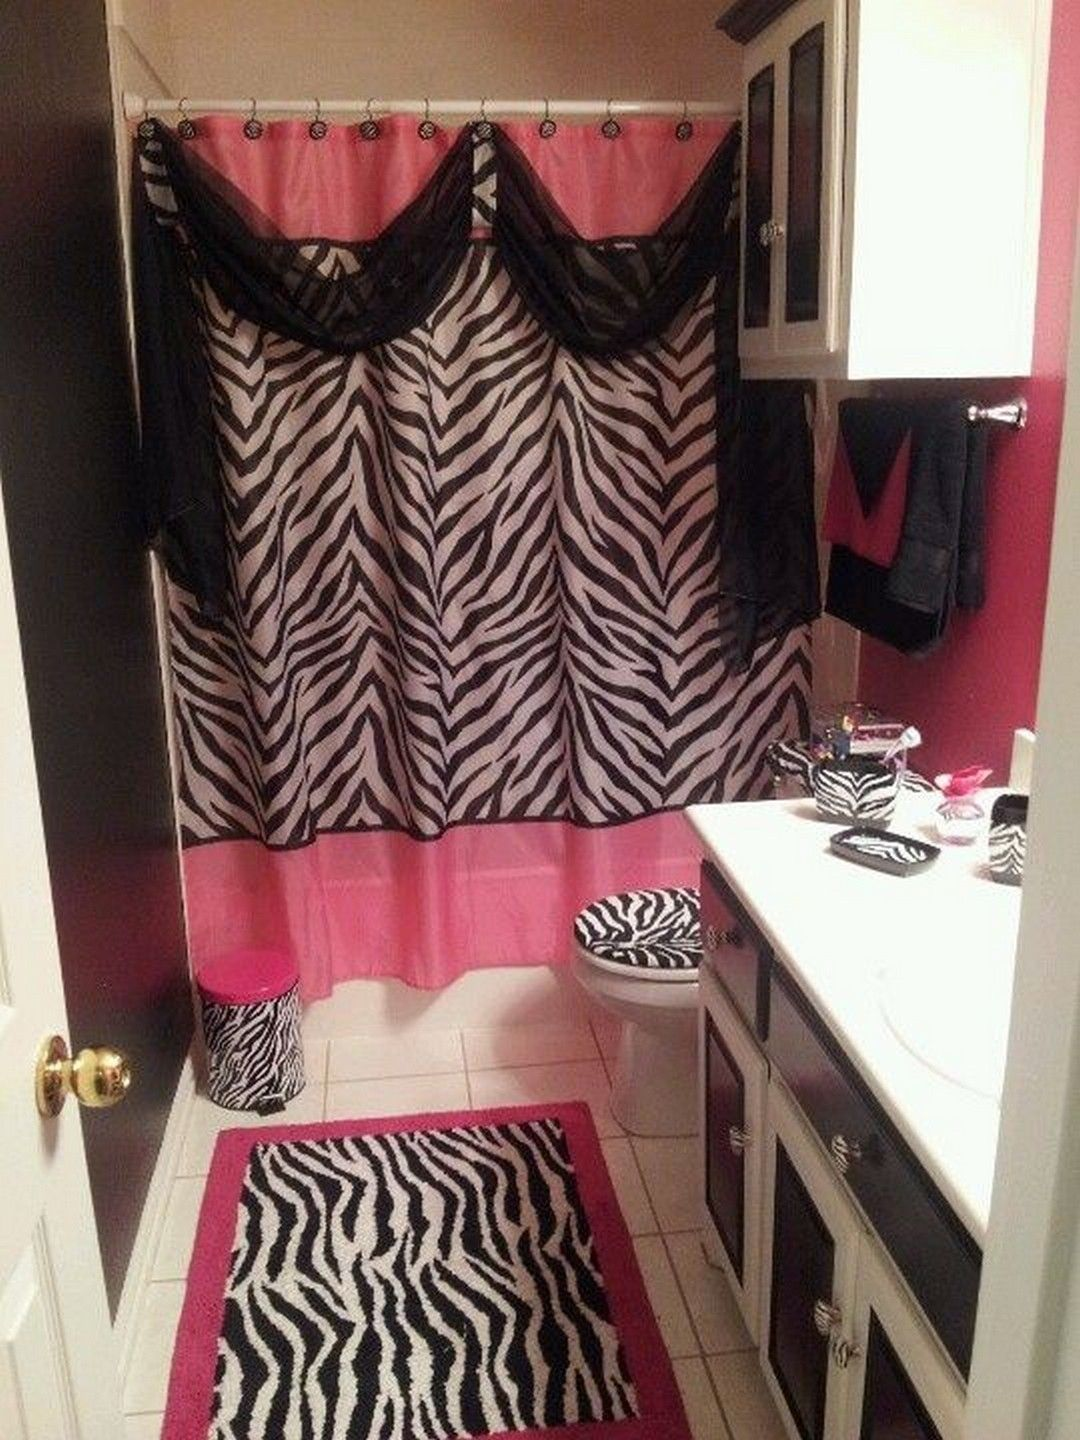 Zebra Theme Bathroom Ideas you Can Manage in Your Own Home